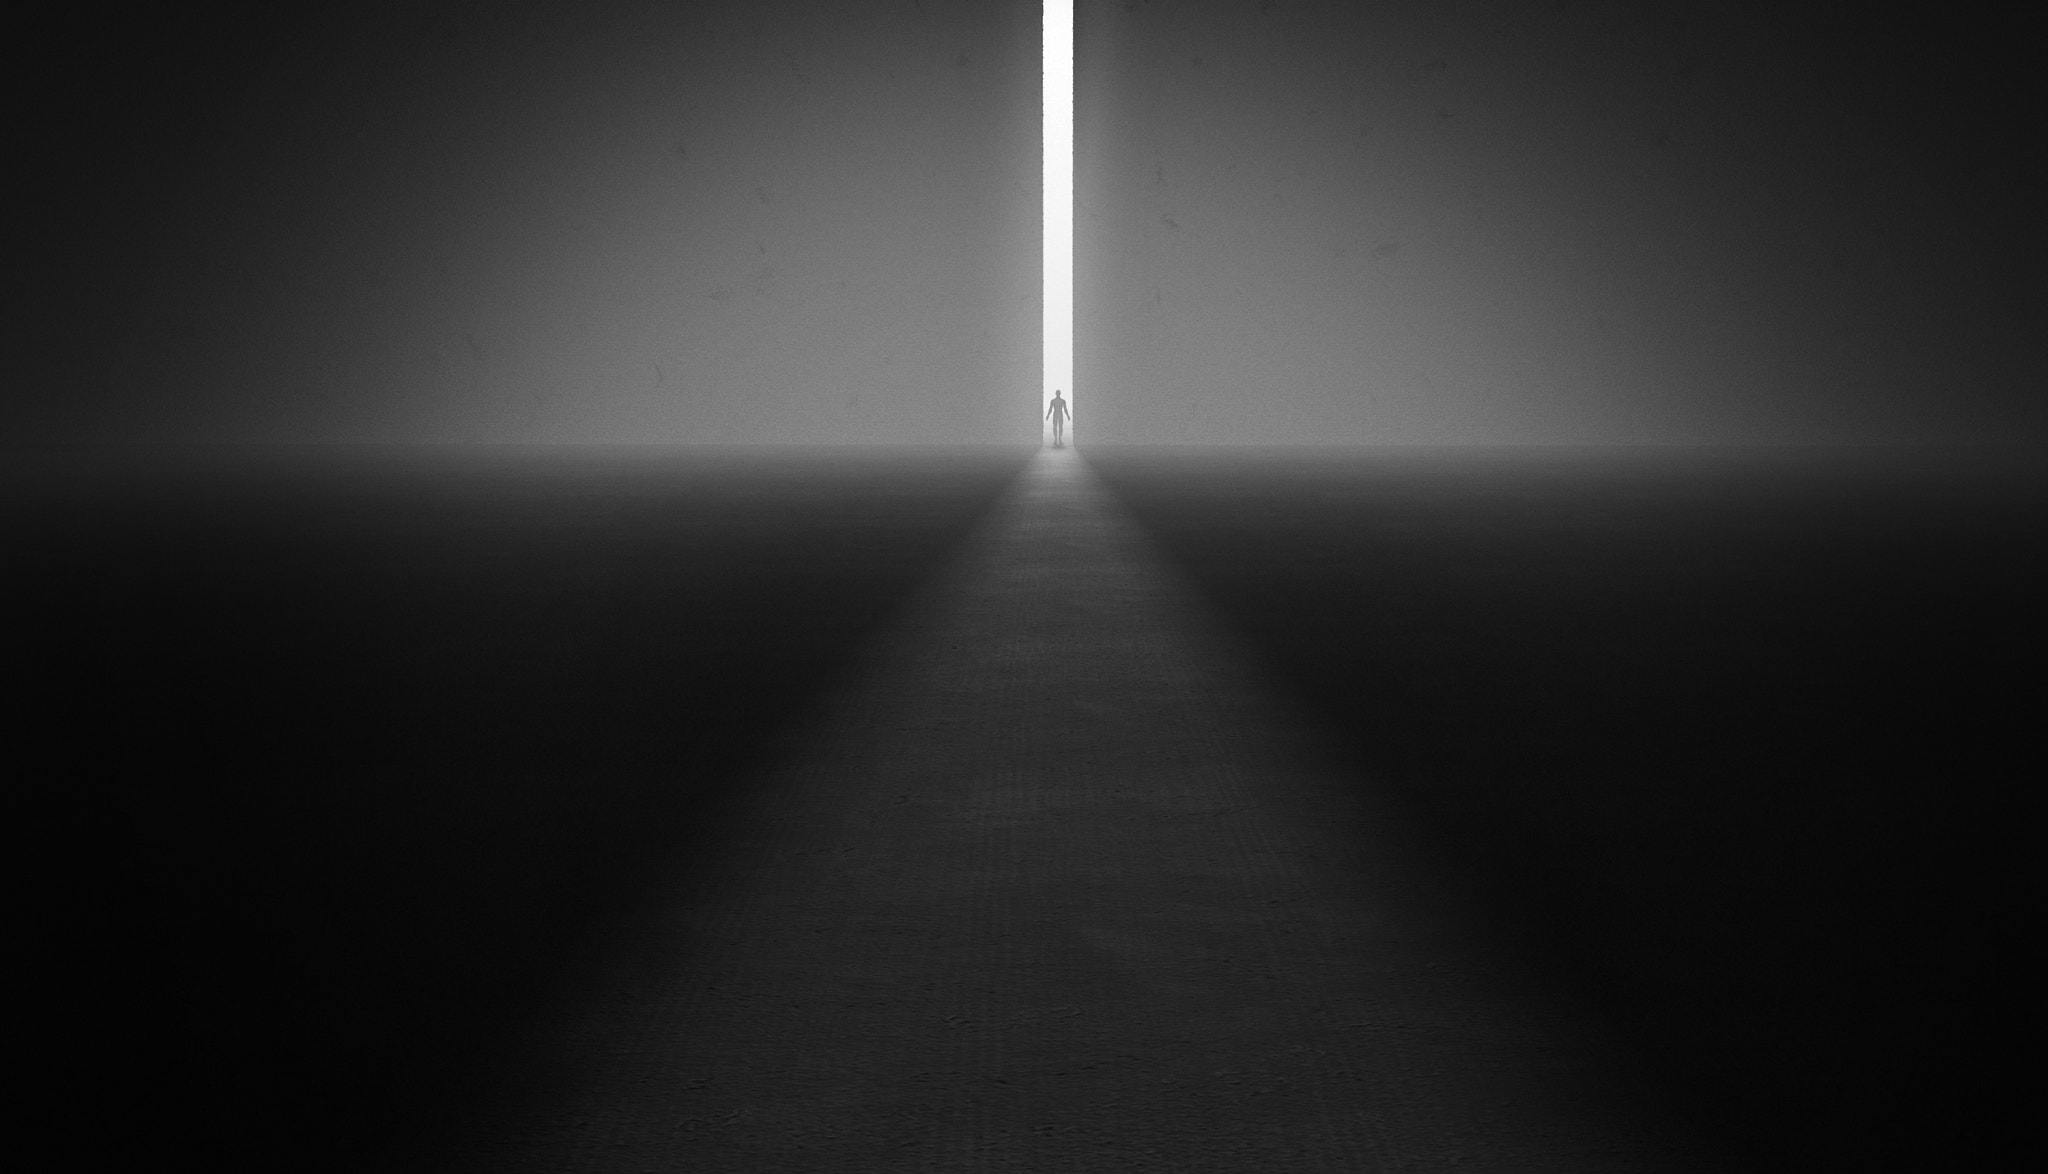 Photograph To the light by Kevin Hosford on 500px